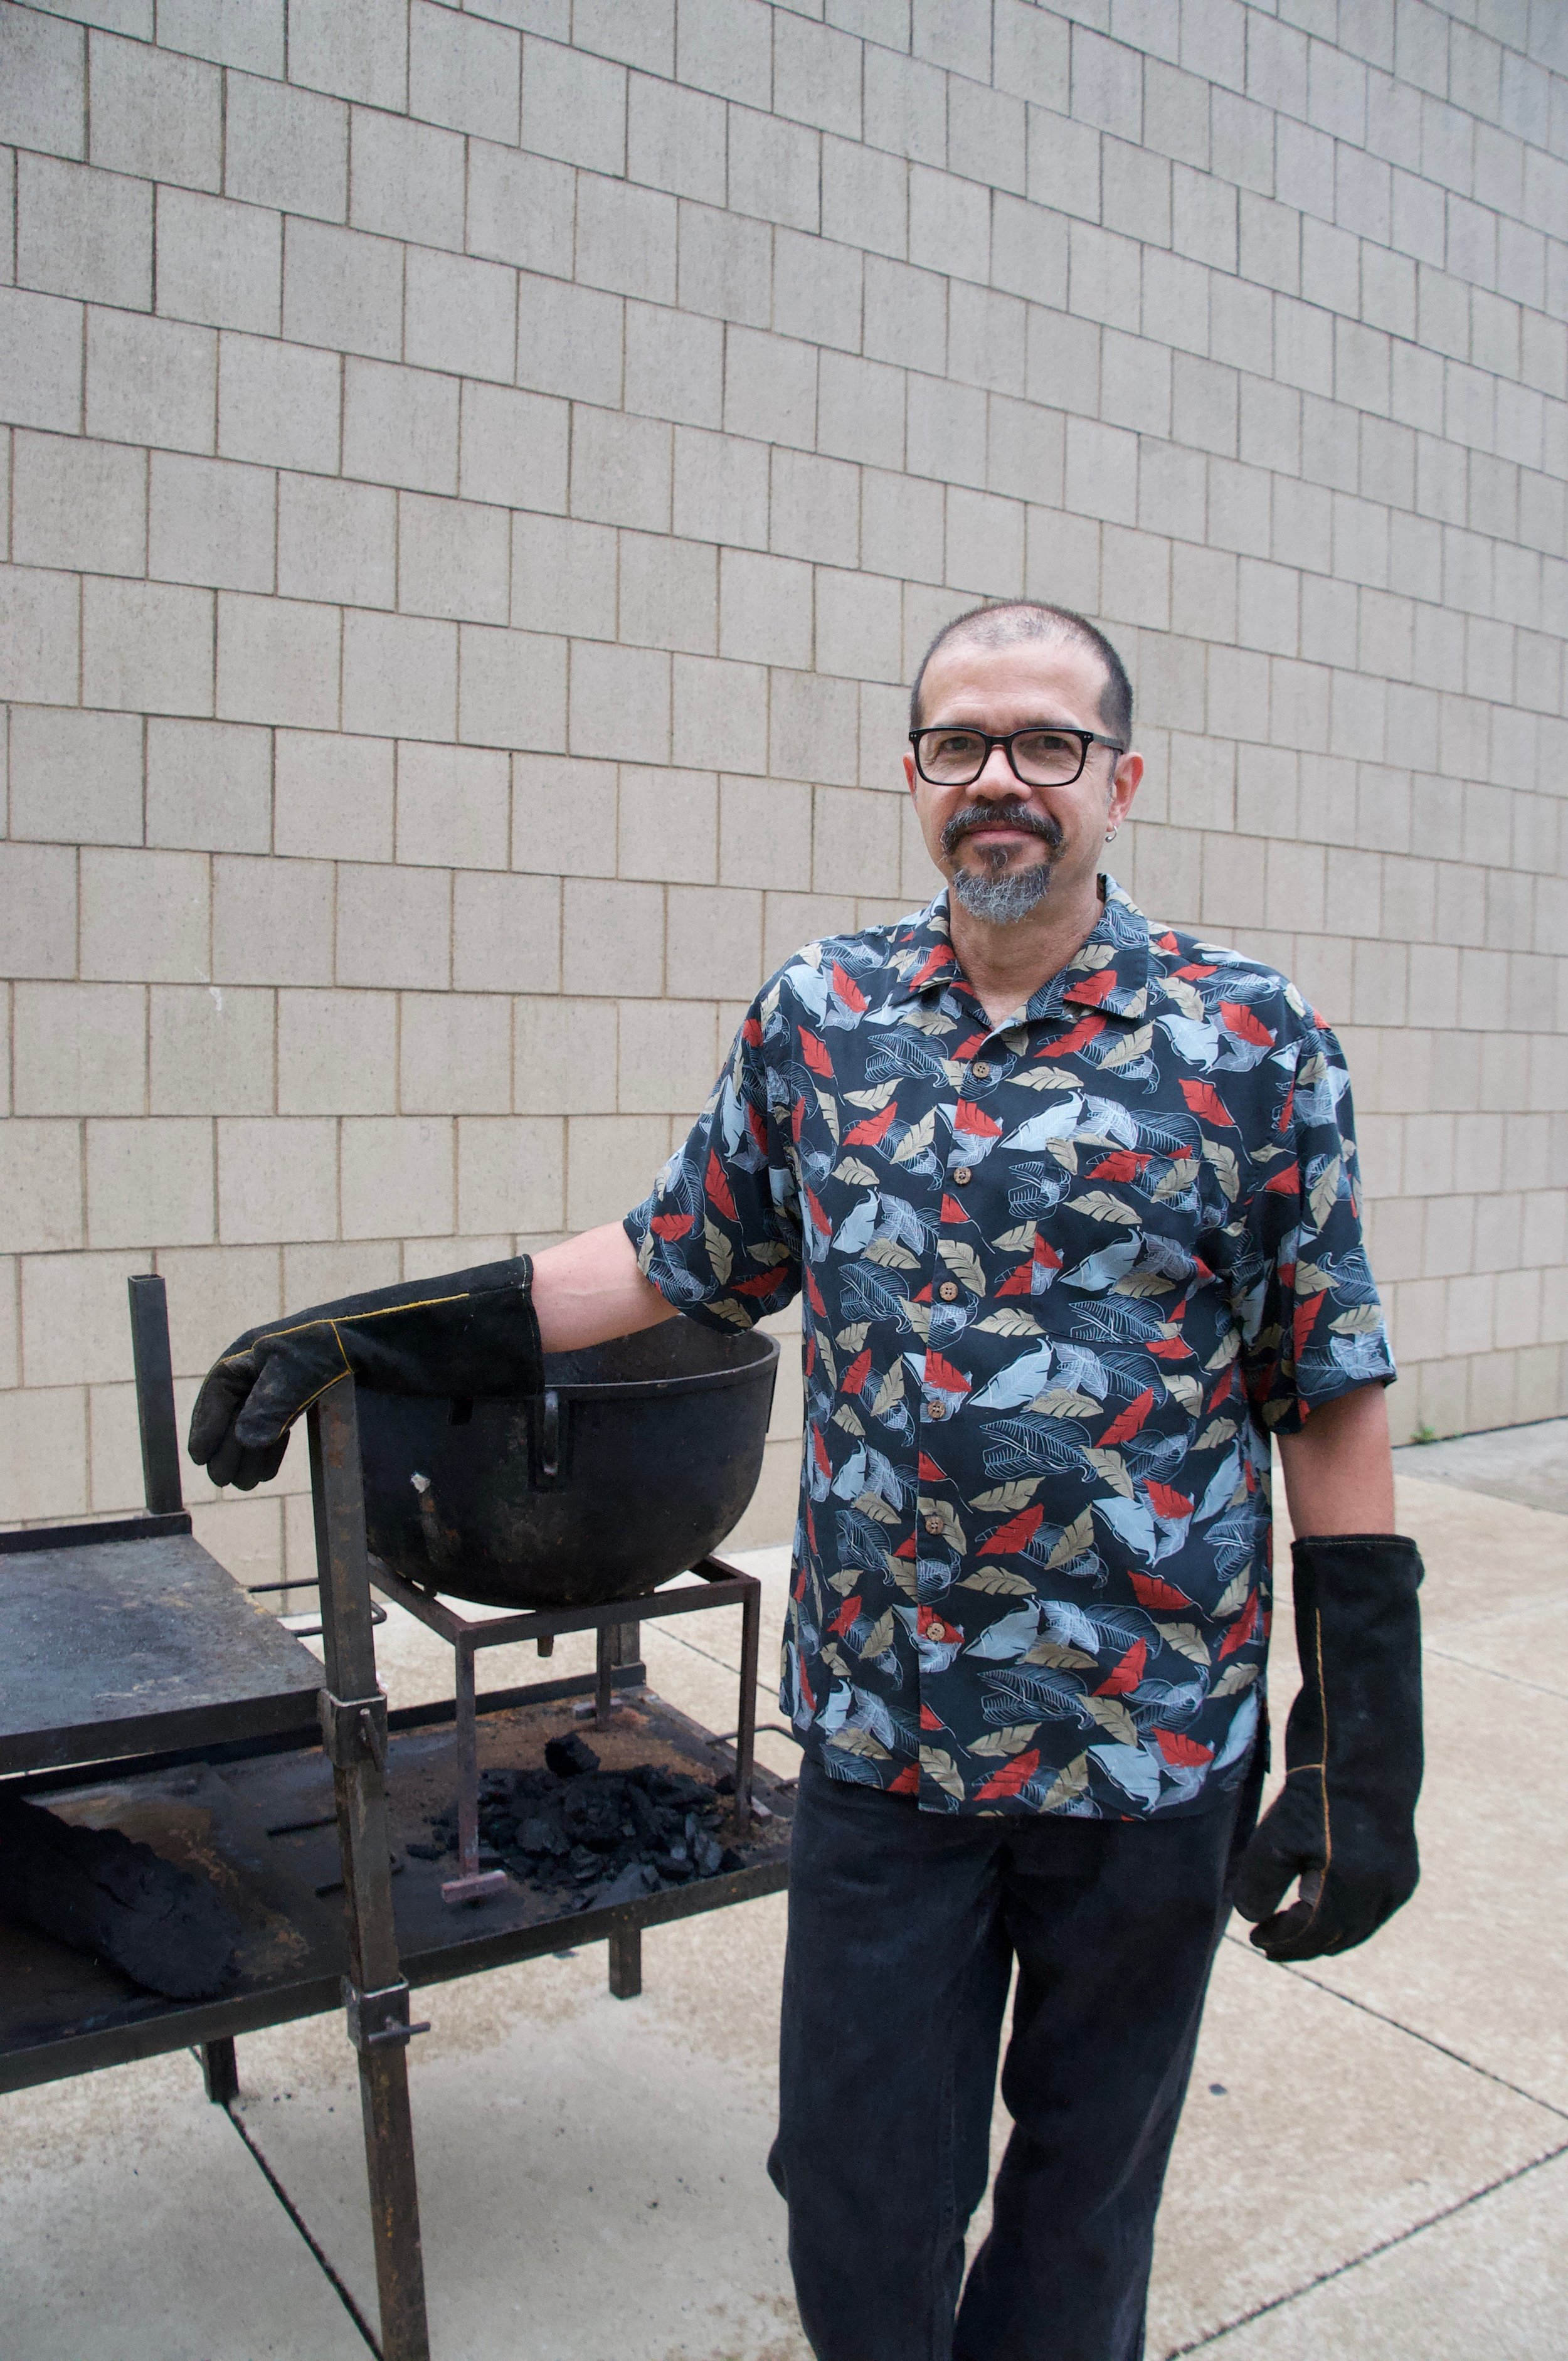 """Luis Laya, Venezula  """"In FireLab we cook to strengthen community, connect cultures, and celebrate creativity. We love sharing food and stories from our country (Venezuela) and elsewhere, building bridges between people and cultures using food as a universal language"""""""